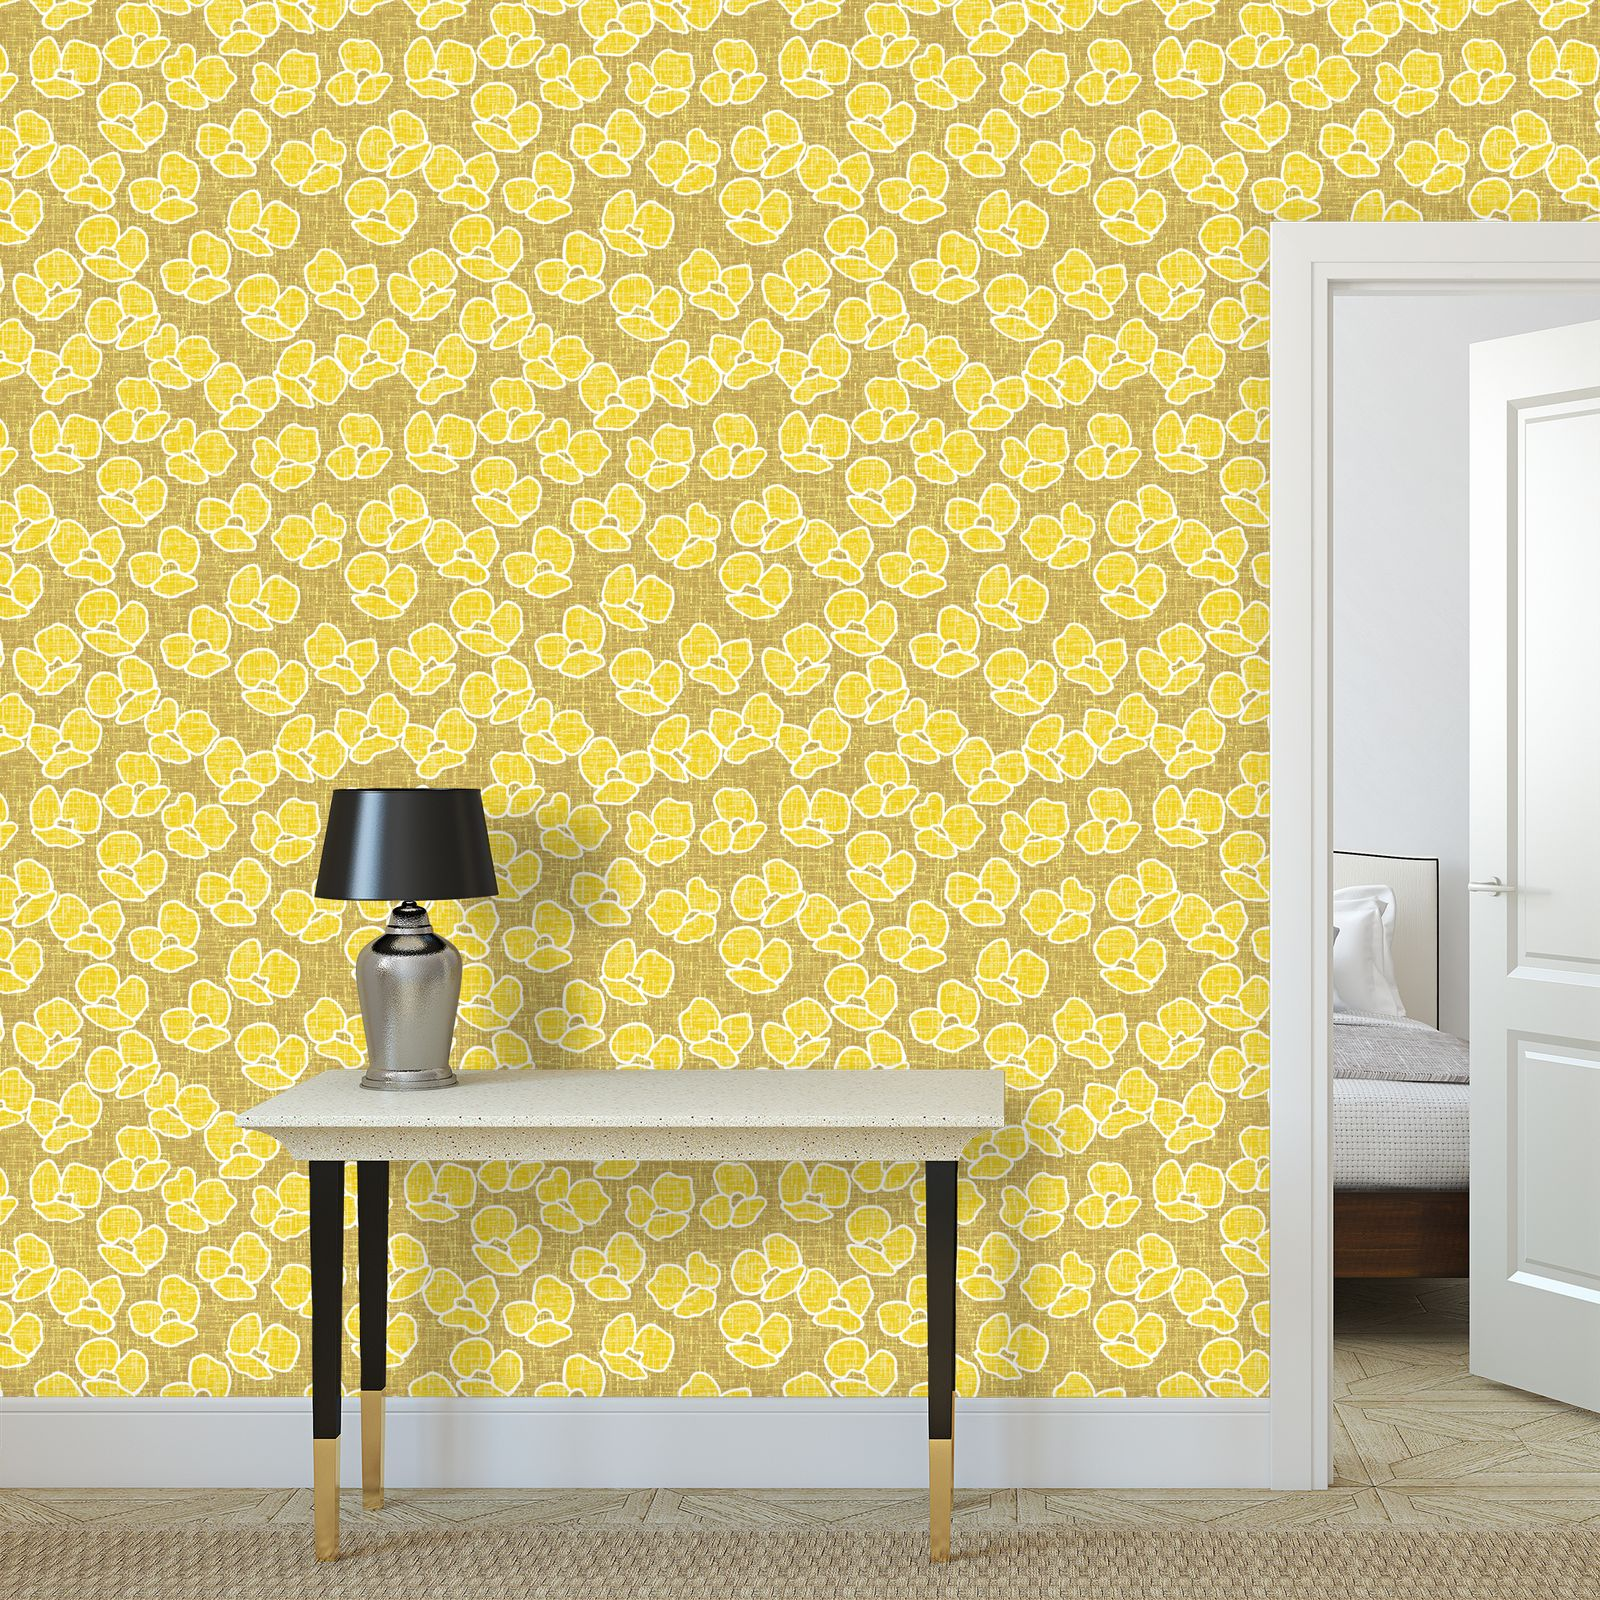 Wallpaper Rolls large scale - Golden poppies - yellow flowers, summer floral, flowering meadow, nature design, graphic, sun energetic - designed by Tiana Lofd